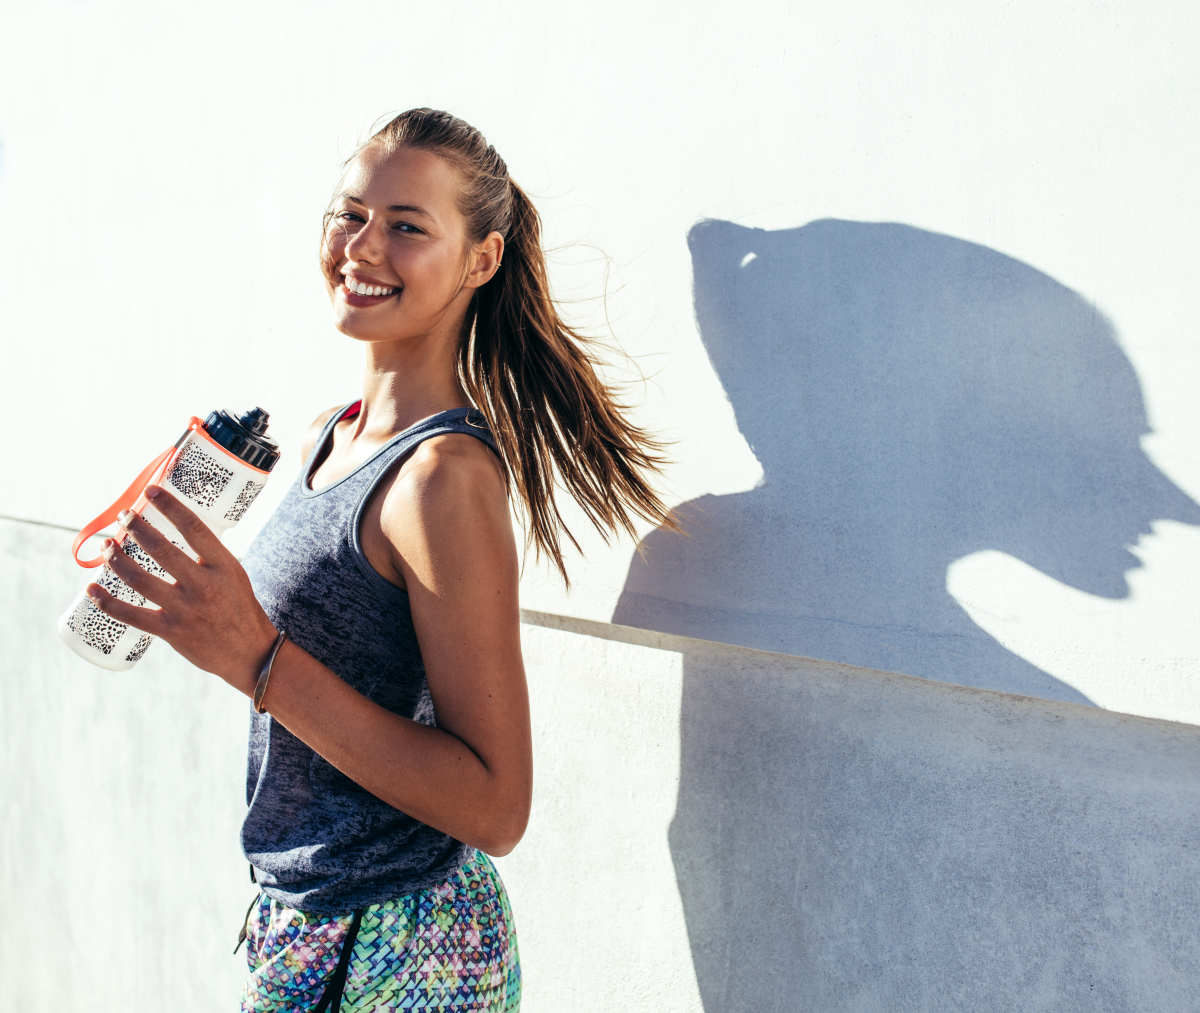 Beautiful female runner standing outdoors | Antioxidants and Its Benefits | Alkaline Water and Antioxidants